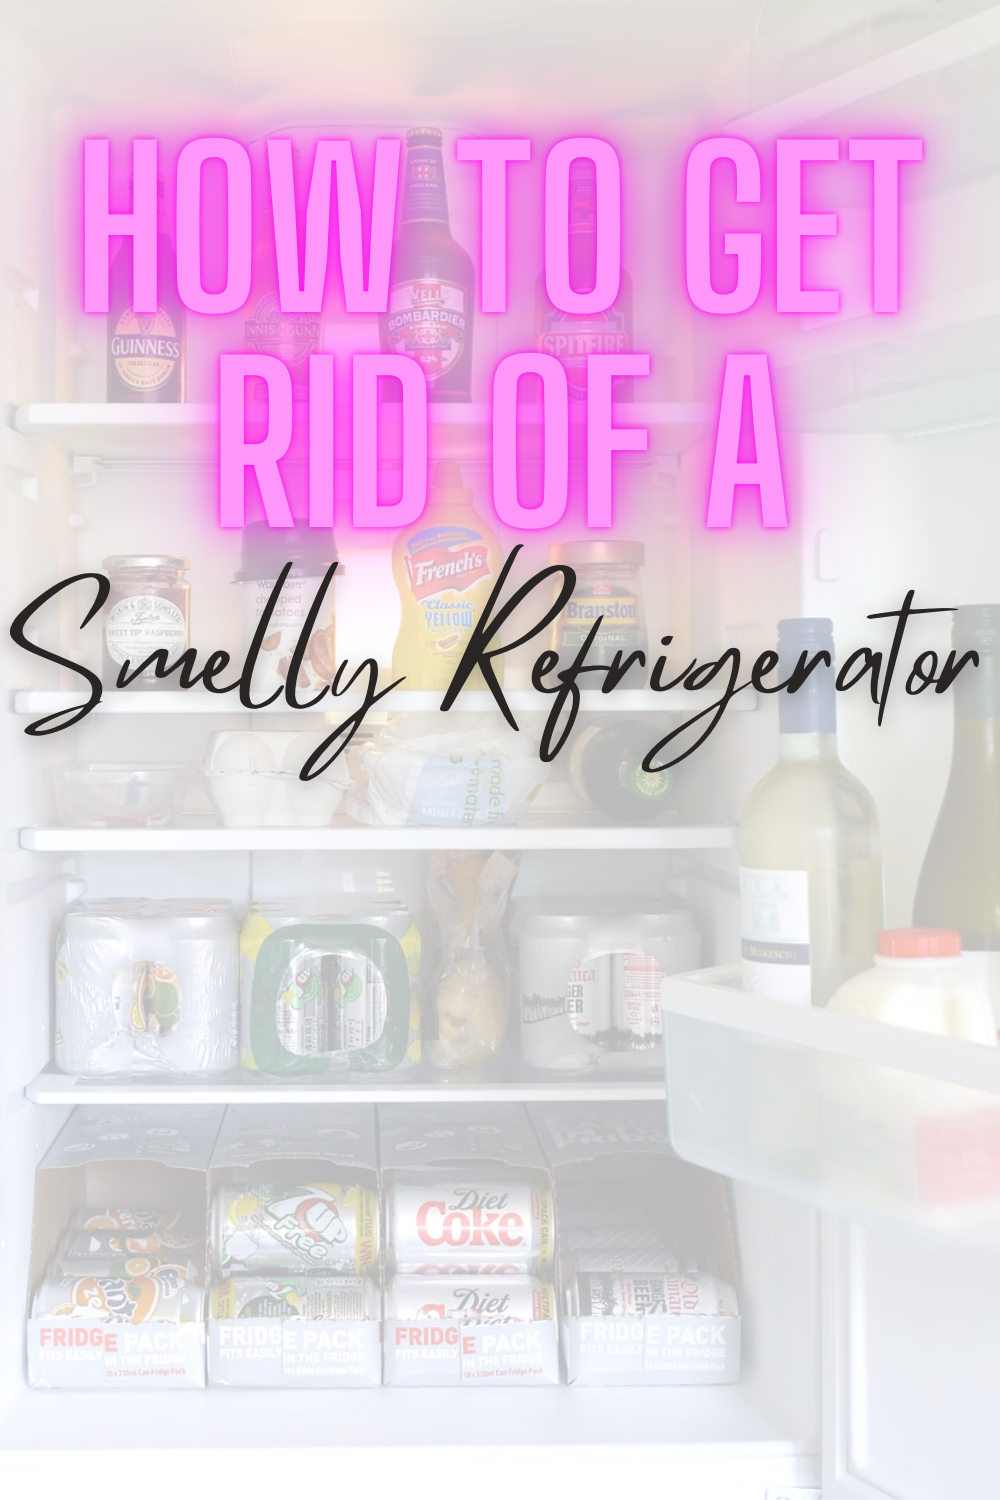 How To Get Rid Of A Stinky Refrigerator - Bad odor coming from your kitchen? Sharing my best tips to rid yourself of gross refrigerator smells!